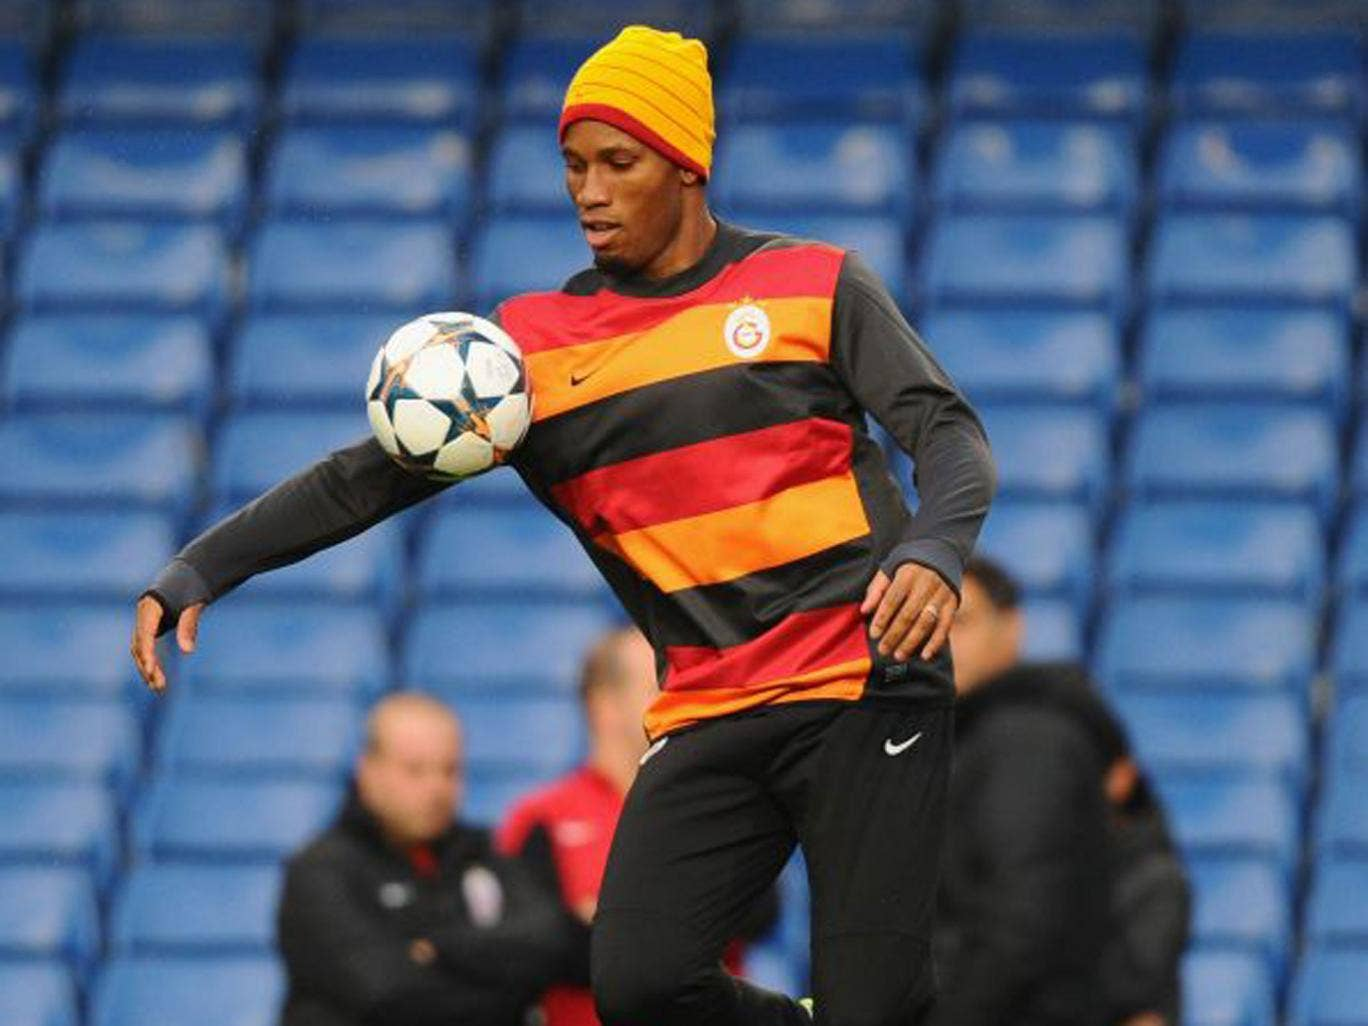 Galatasaray's Didier Drogba trains at Stamford Bridge yesterday